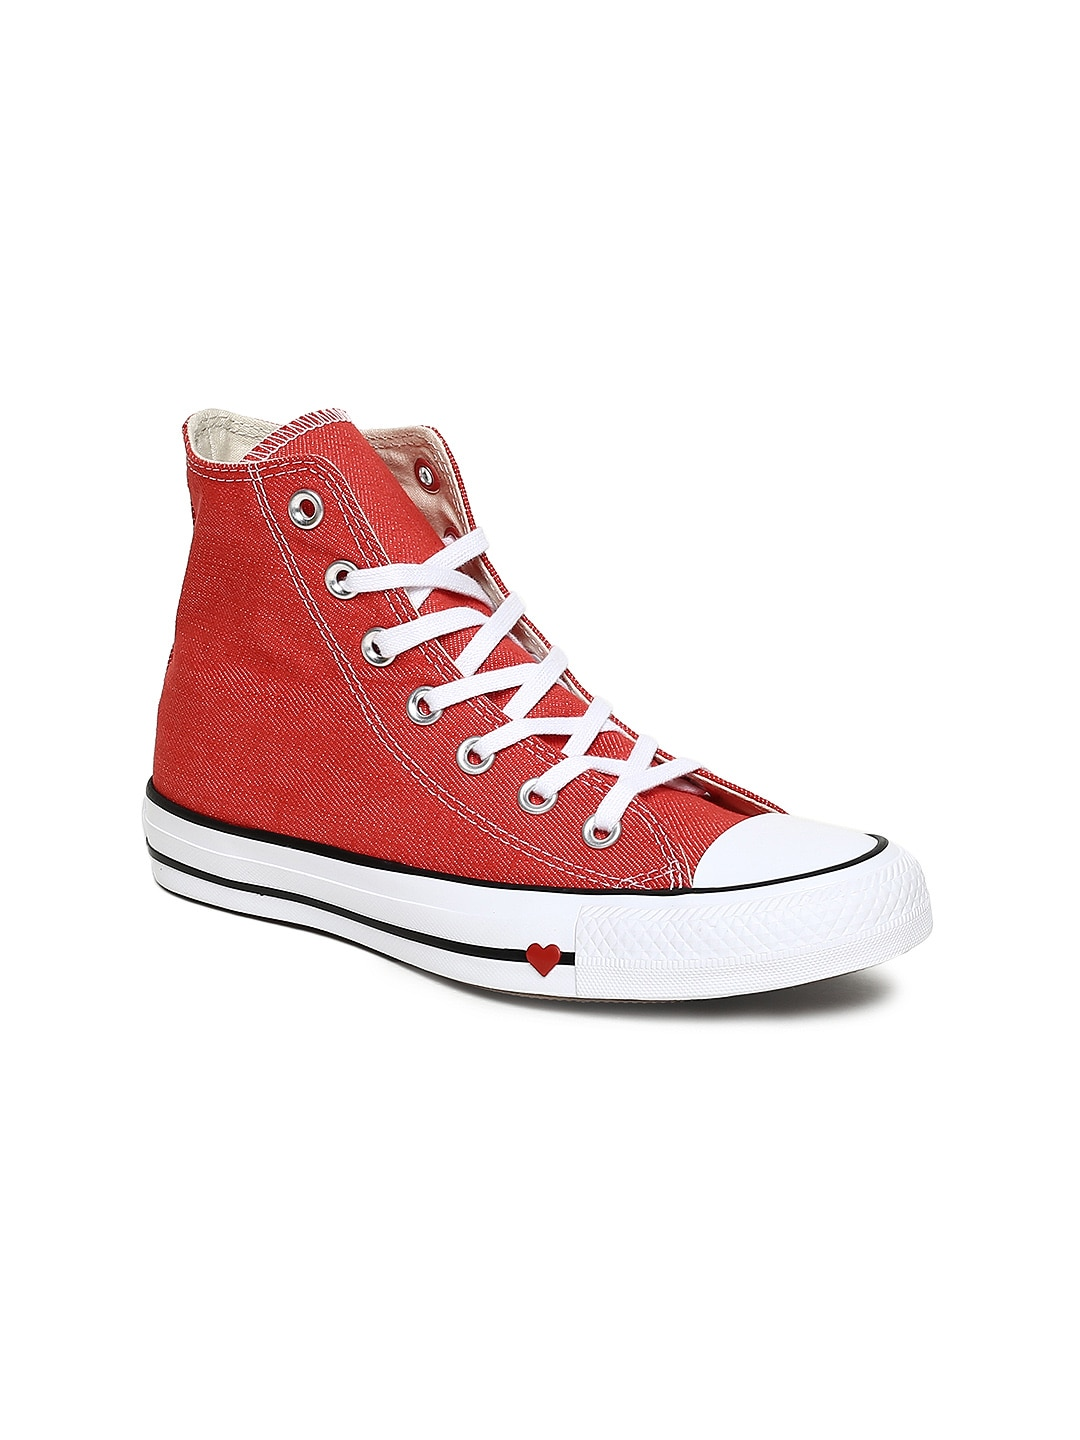 fb1c23dabc35da Converse Shoes - Buy Converse Canvas Shoes   Sneakers Online